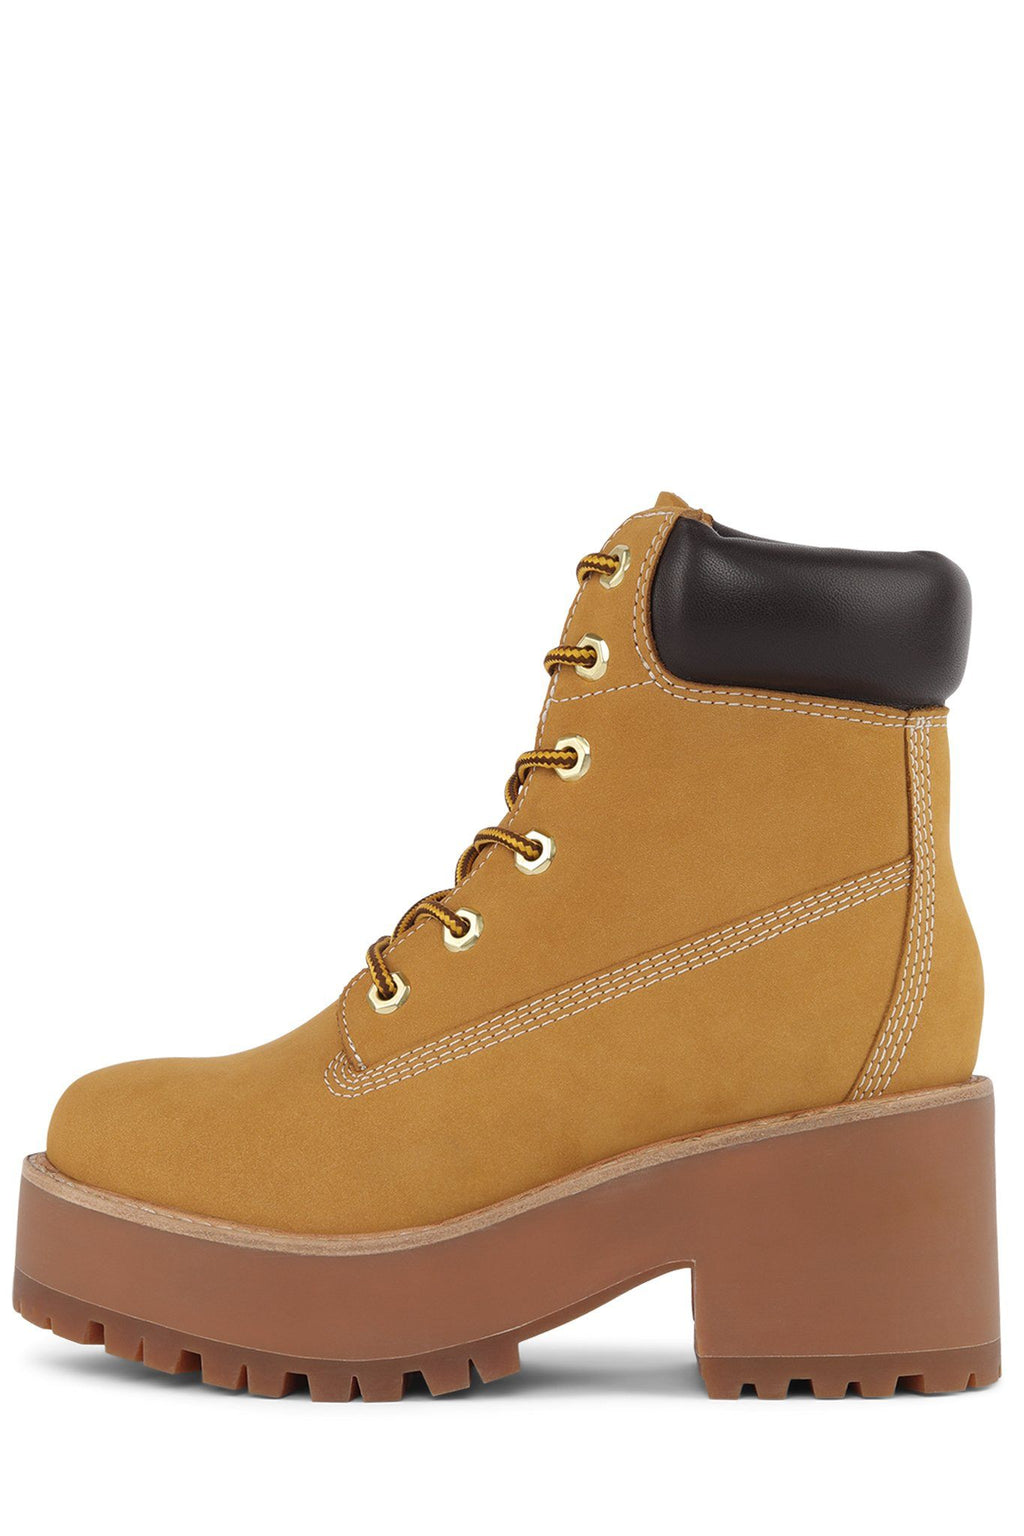 BULLDOZE Boot Jeffrey Campbell Wheat Combo 5.5